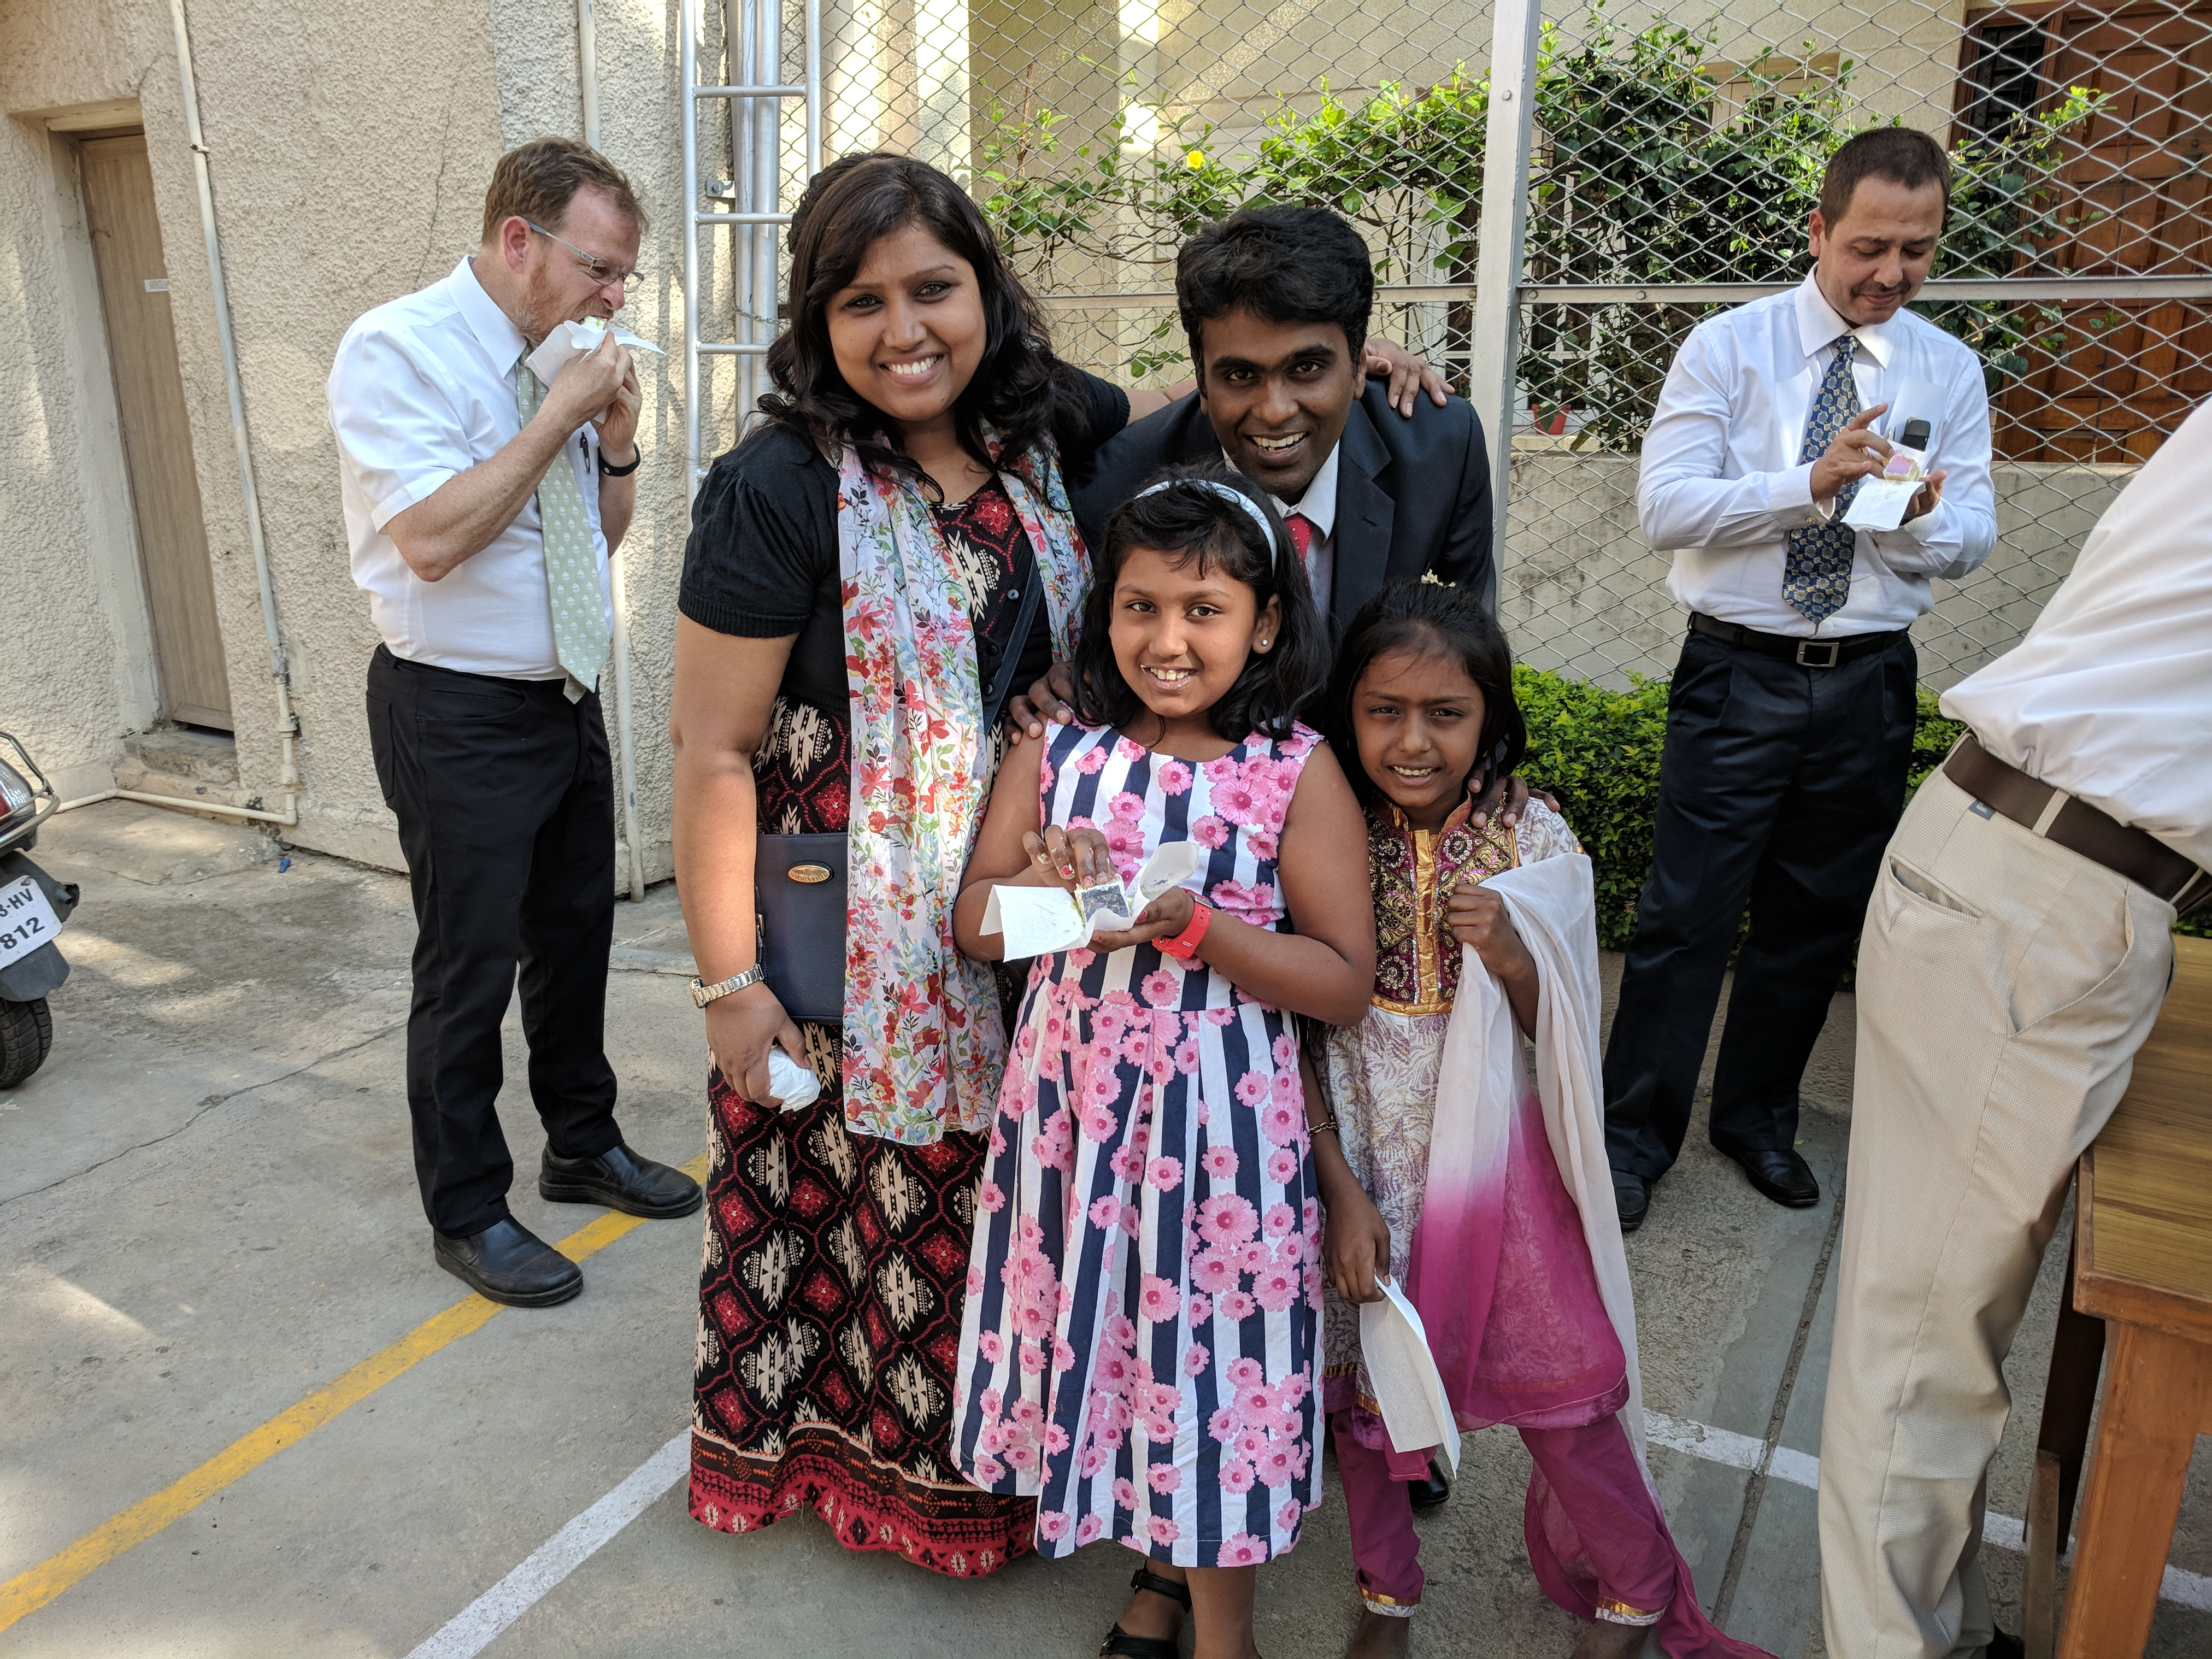 Members in Bangaluru India celebrate with cake after hearing the announcement of a temple in India.